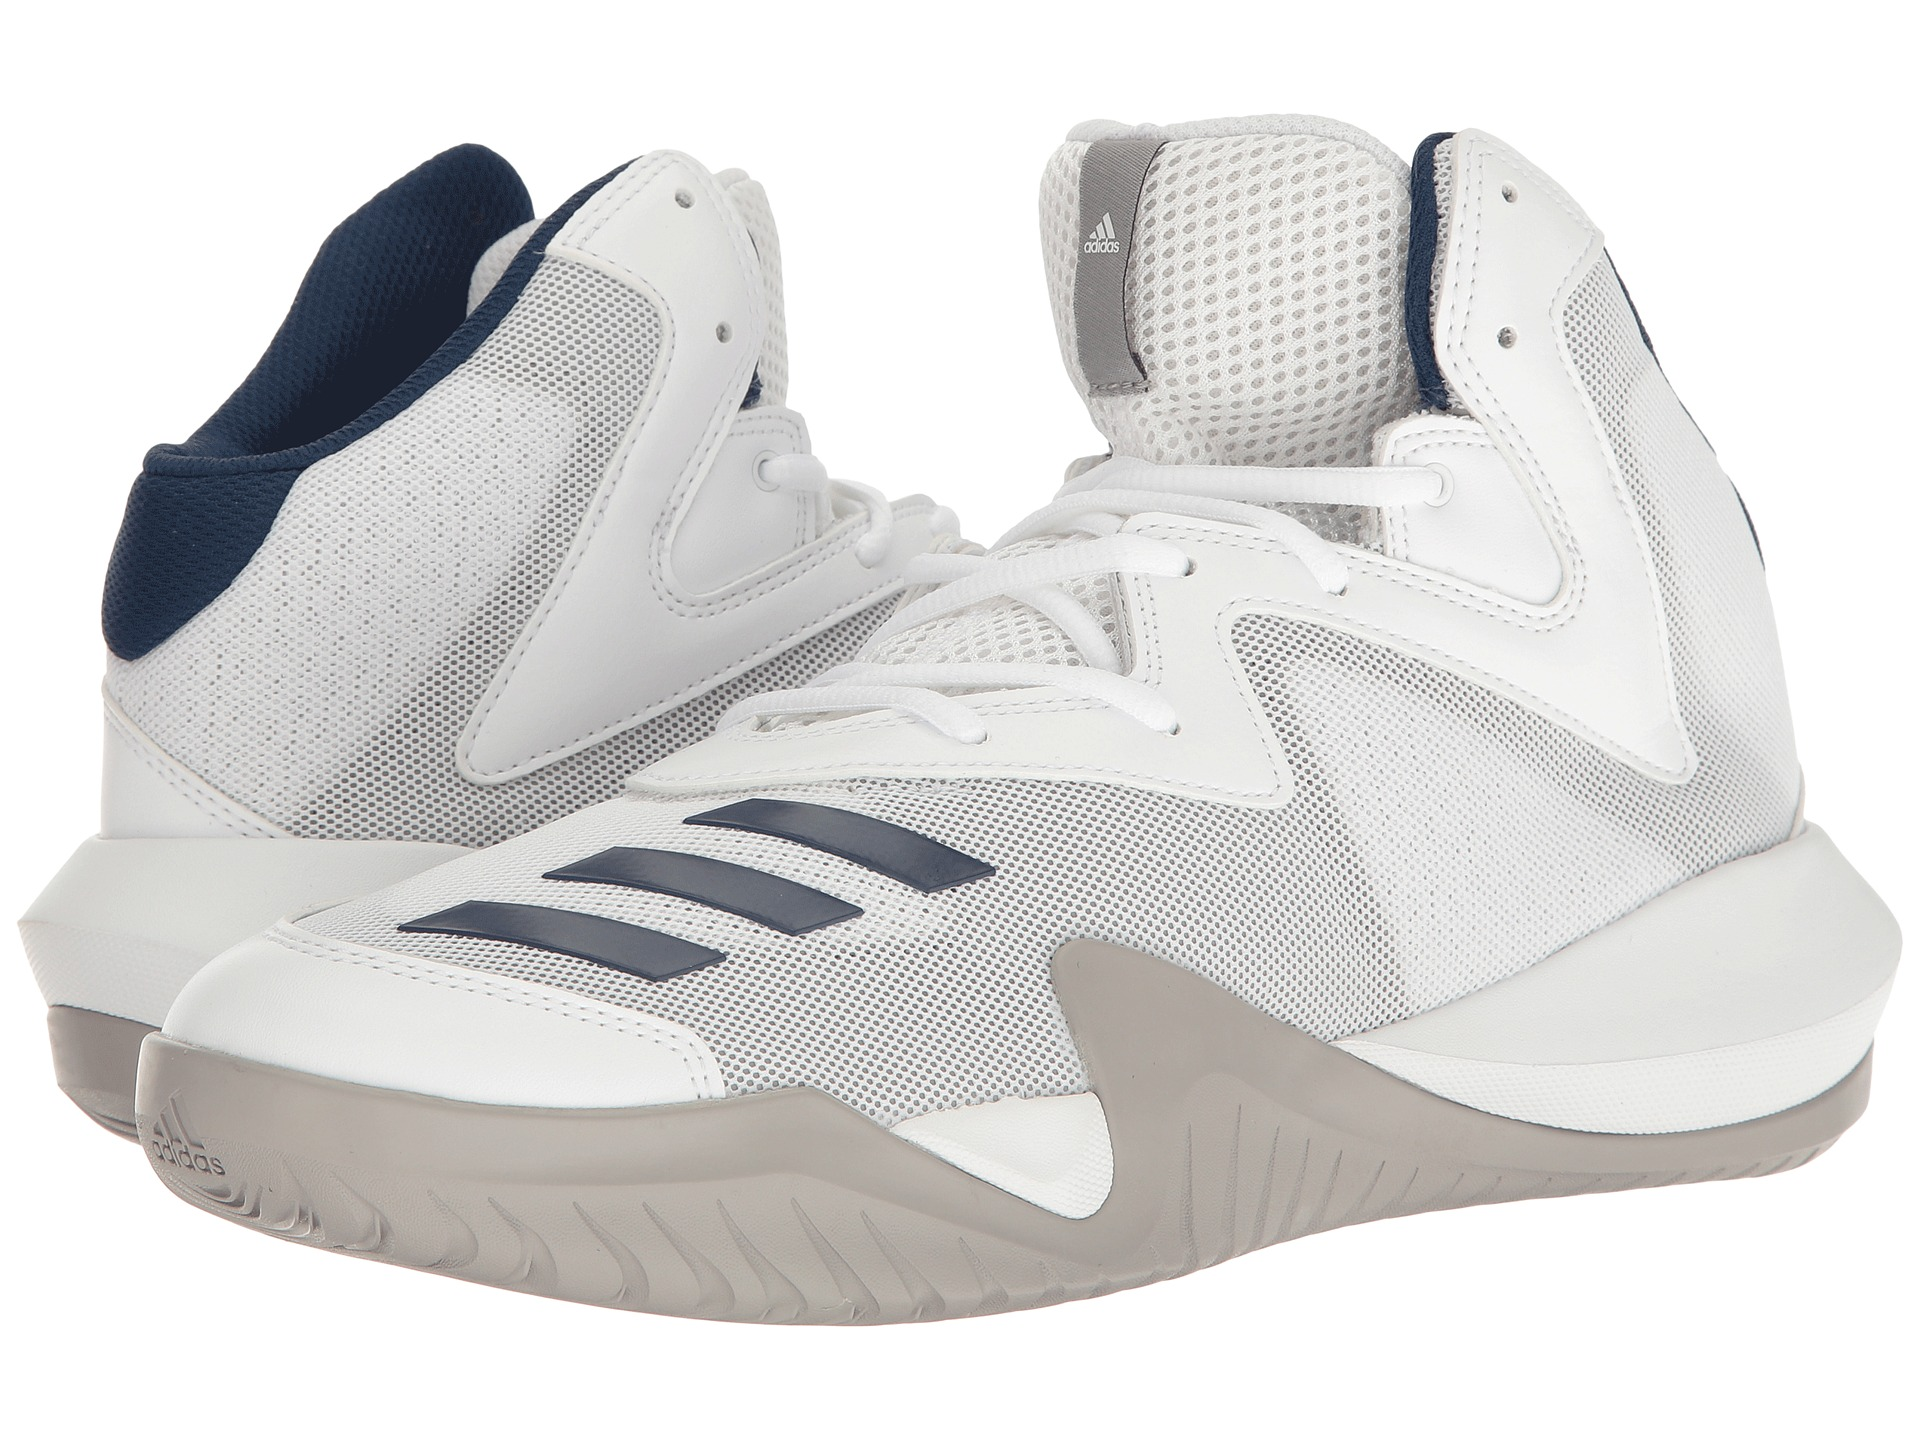 adidas Crazy Team 2017 at 6pm.com